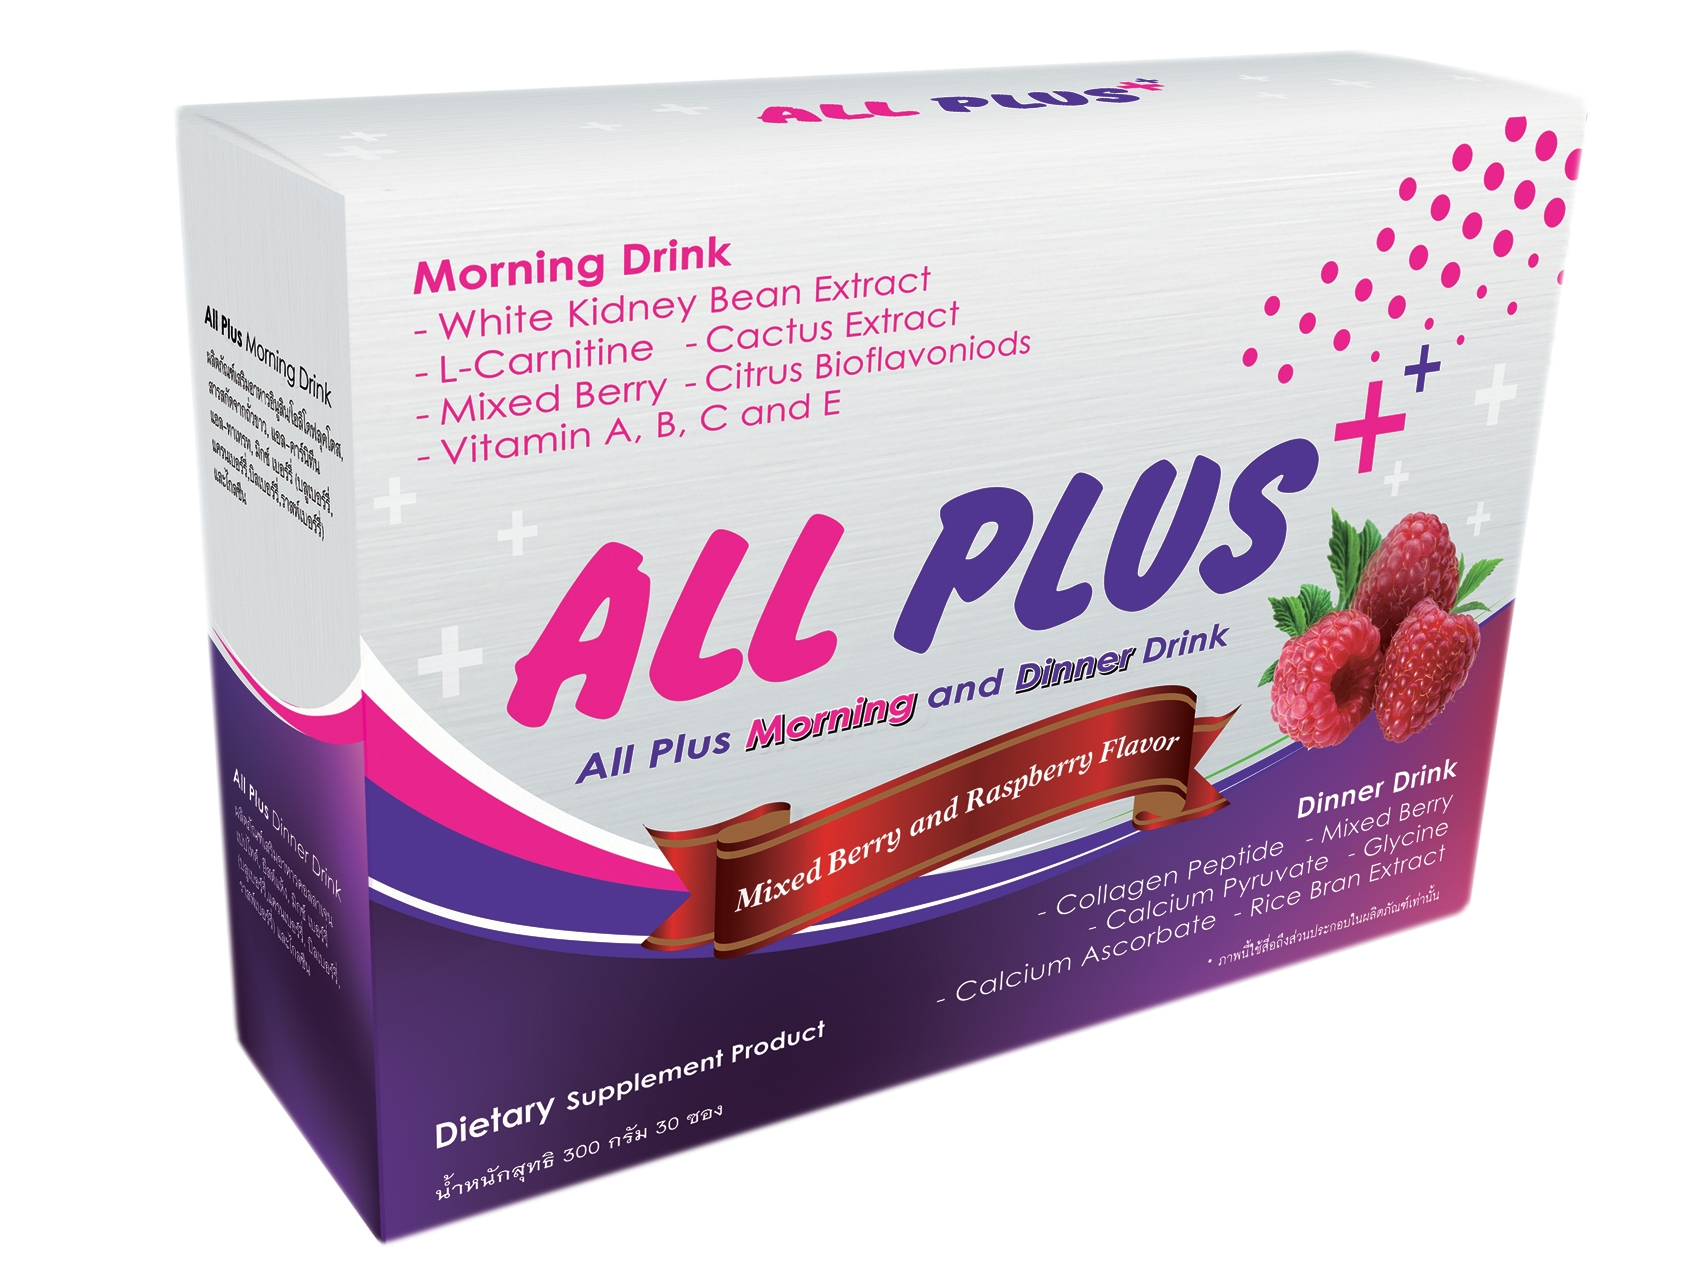 All plus morning and dinner drink ออลพลัสดริ้งค์